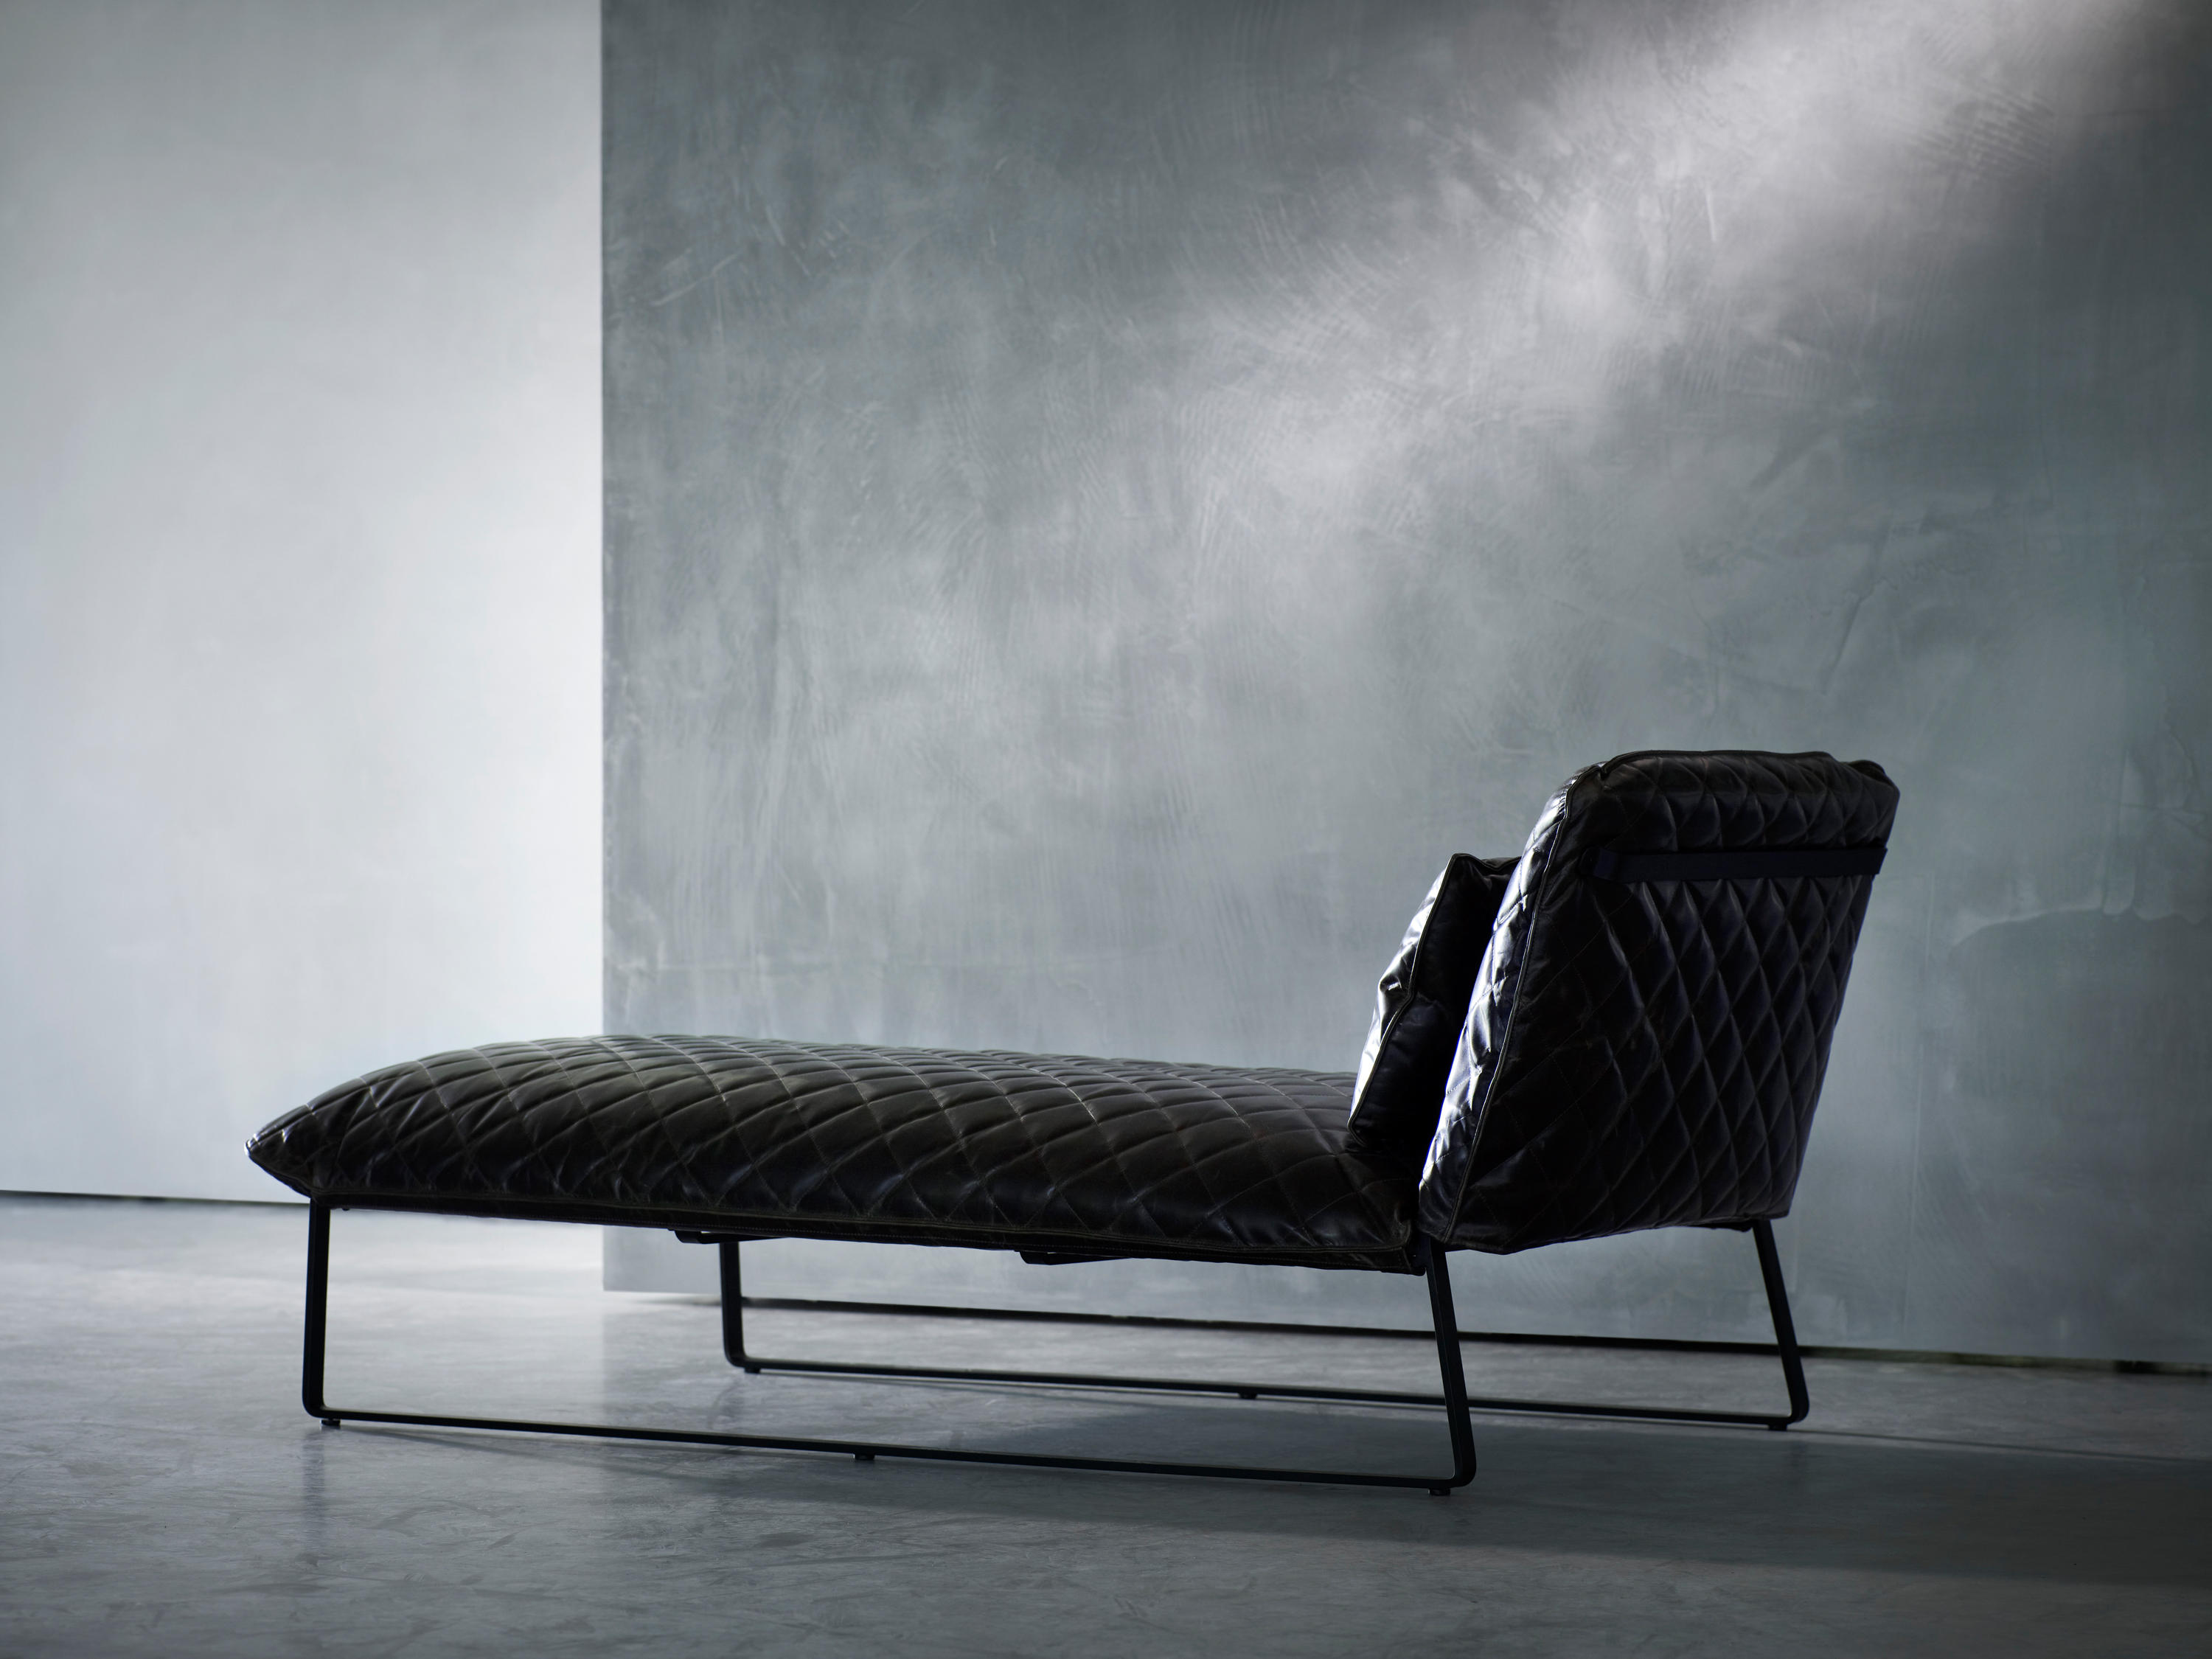 Kekke chaise longue chaise longues from piet boon for Chaise longue manufacturers